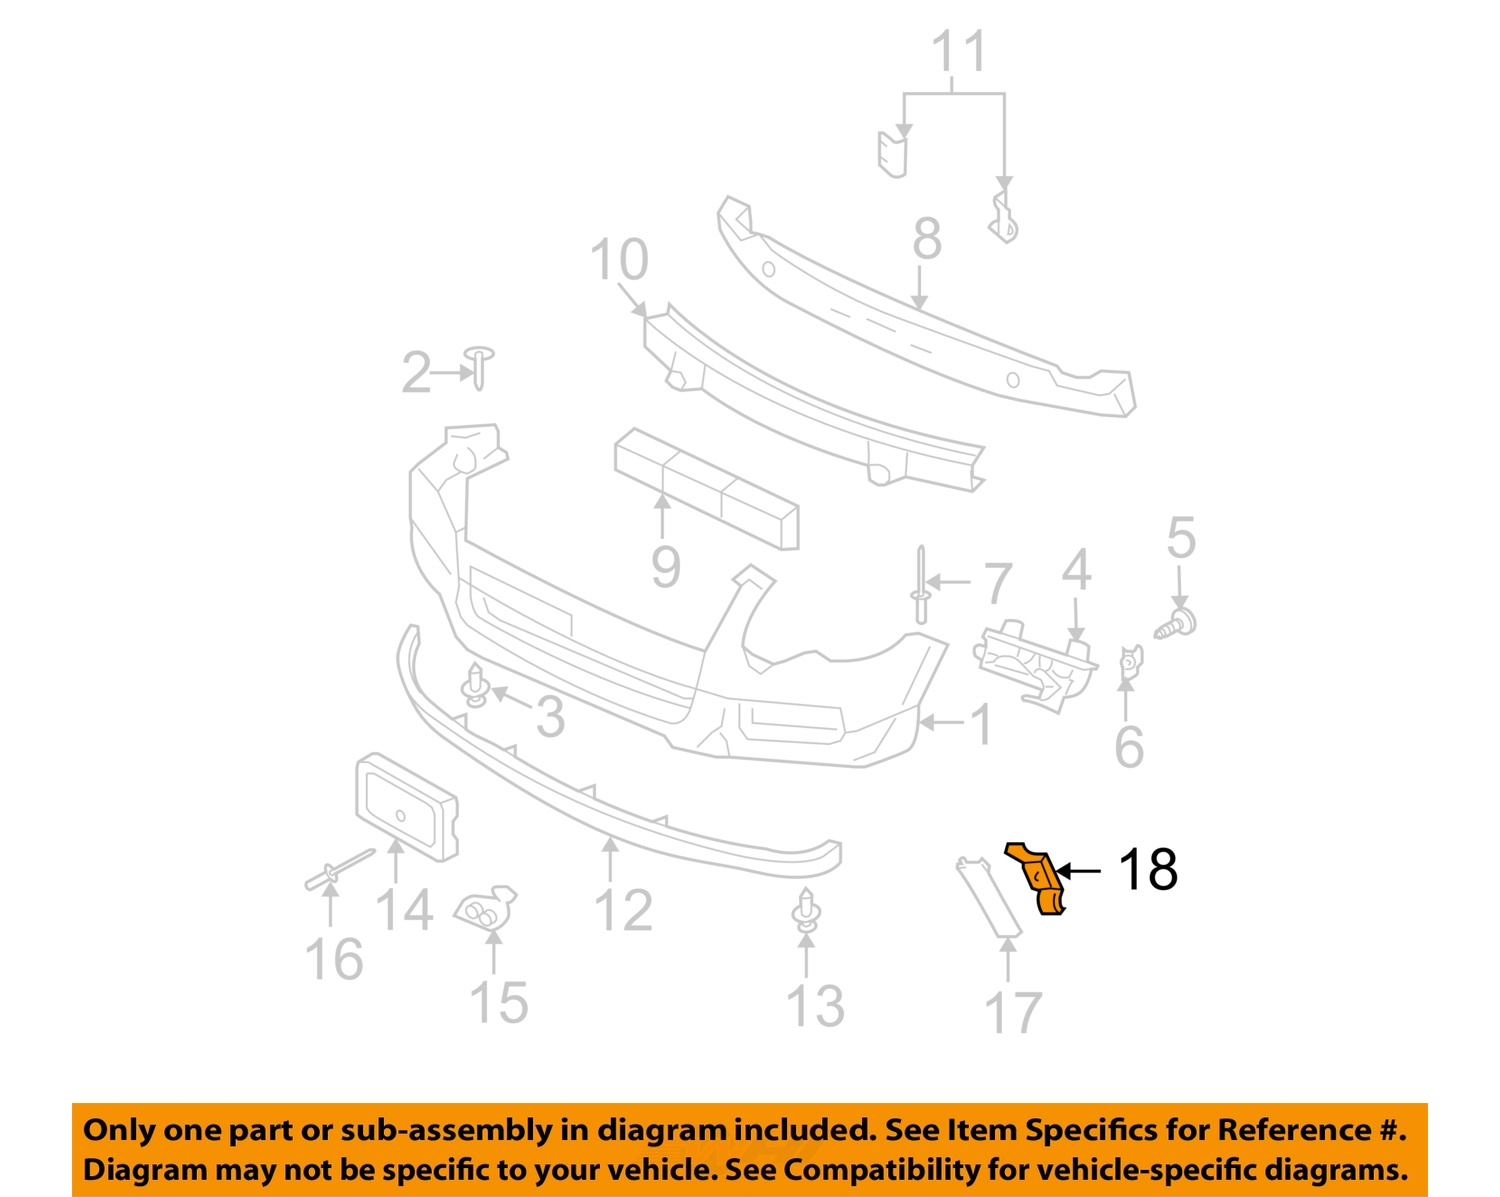 2001 ford e series fuse diagram ford e series front bumper diagram ford oem 06-10 explorer front bumper-front molding ...